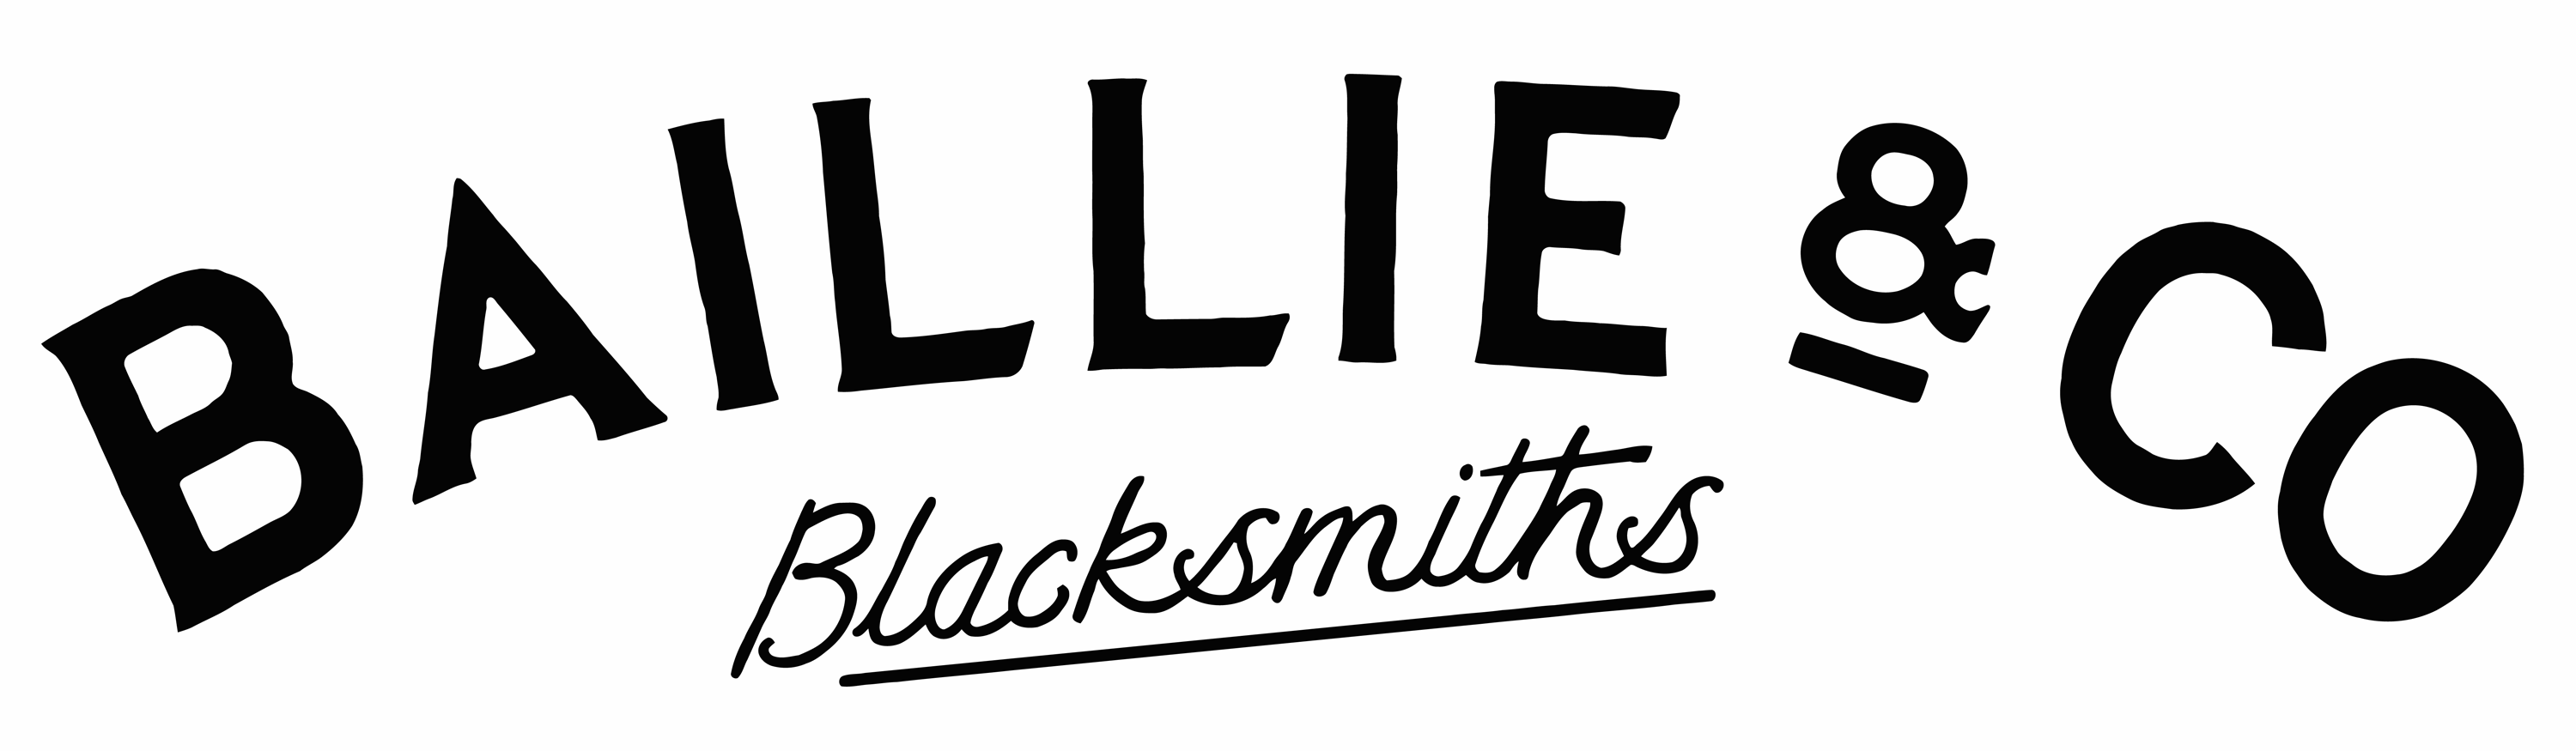 Architecture Archives - Baillie & Co Blacksmiths